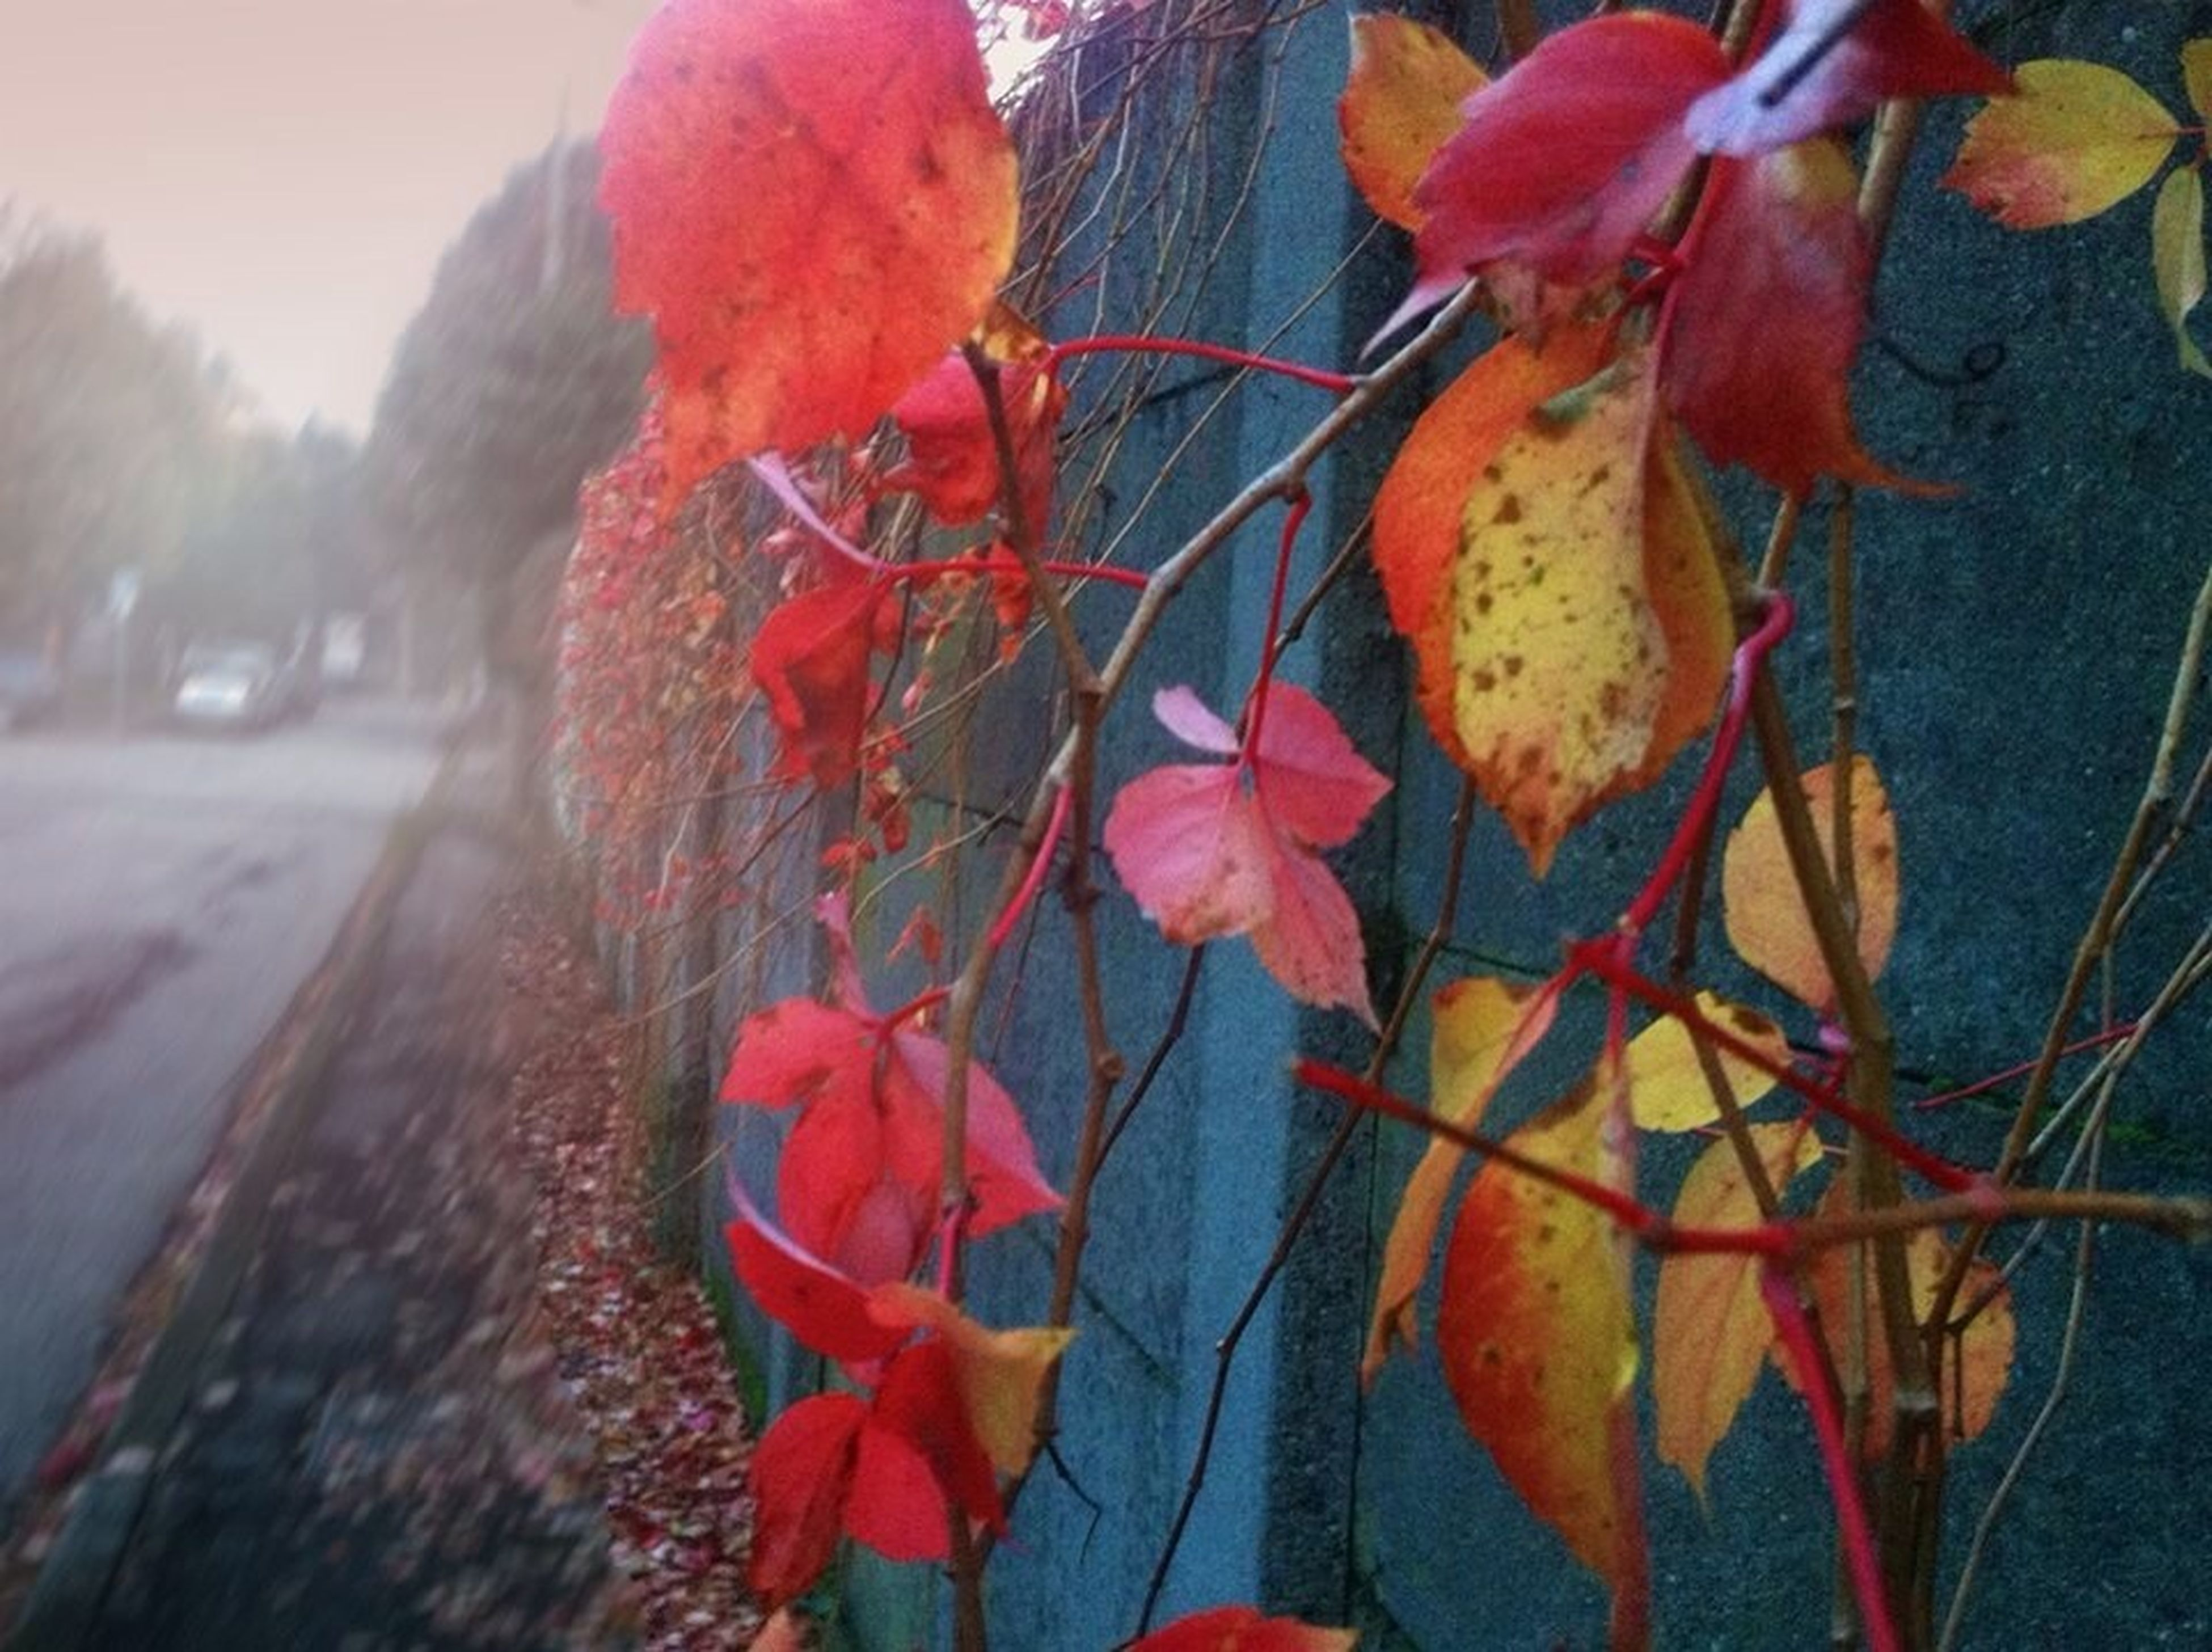 leaf, autumn, branch, red, change, orange color, season, nature, tree, focus on foreground, close-up, bird, leaves, beauty in nature, day, outdoors, growth, flower, no people, fragility